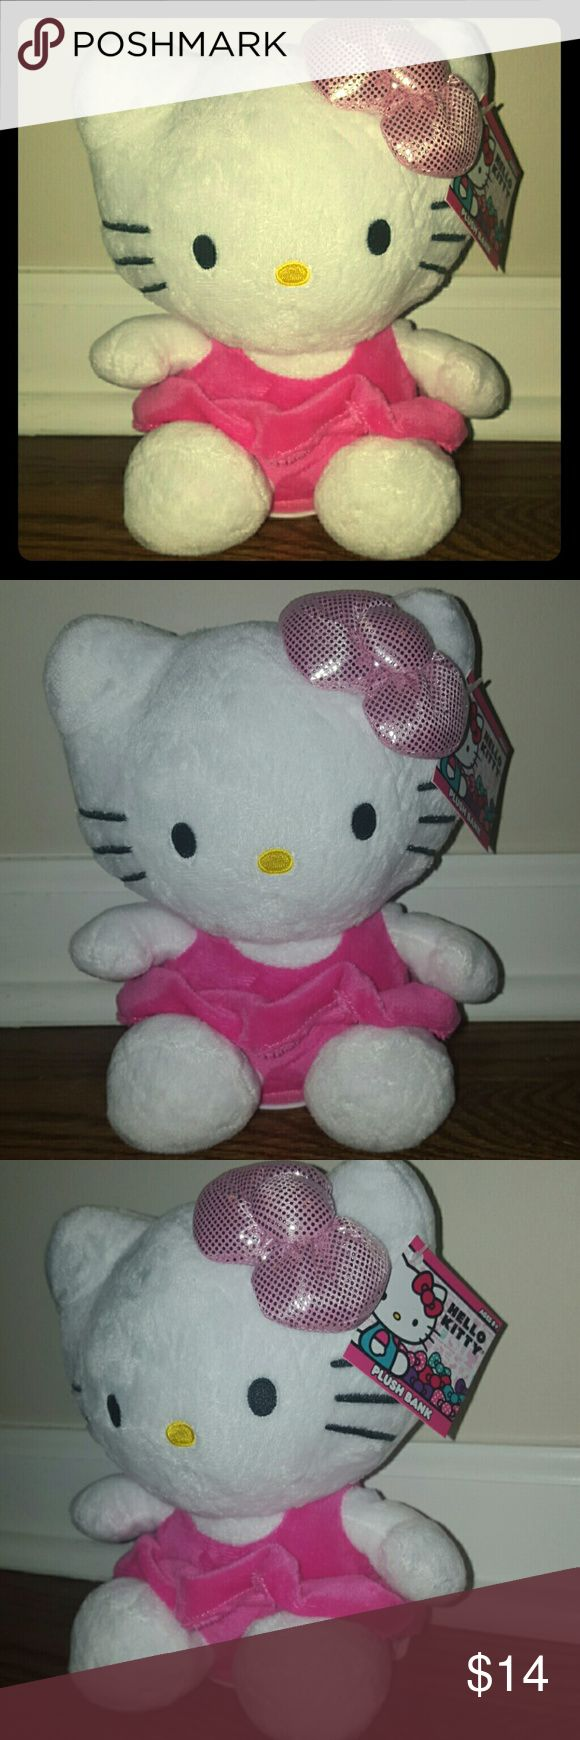 Hello Kitty Plush Piggy Bank Hello Kitty Plush Stuffed Animal Piggy Bank. Extremely soft! Coin hole insert. Stands up straight. New with tags! Hello Kitty Other